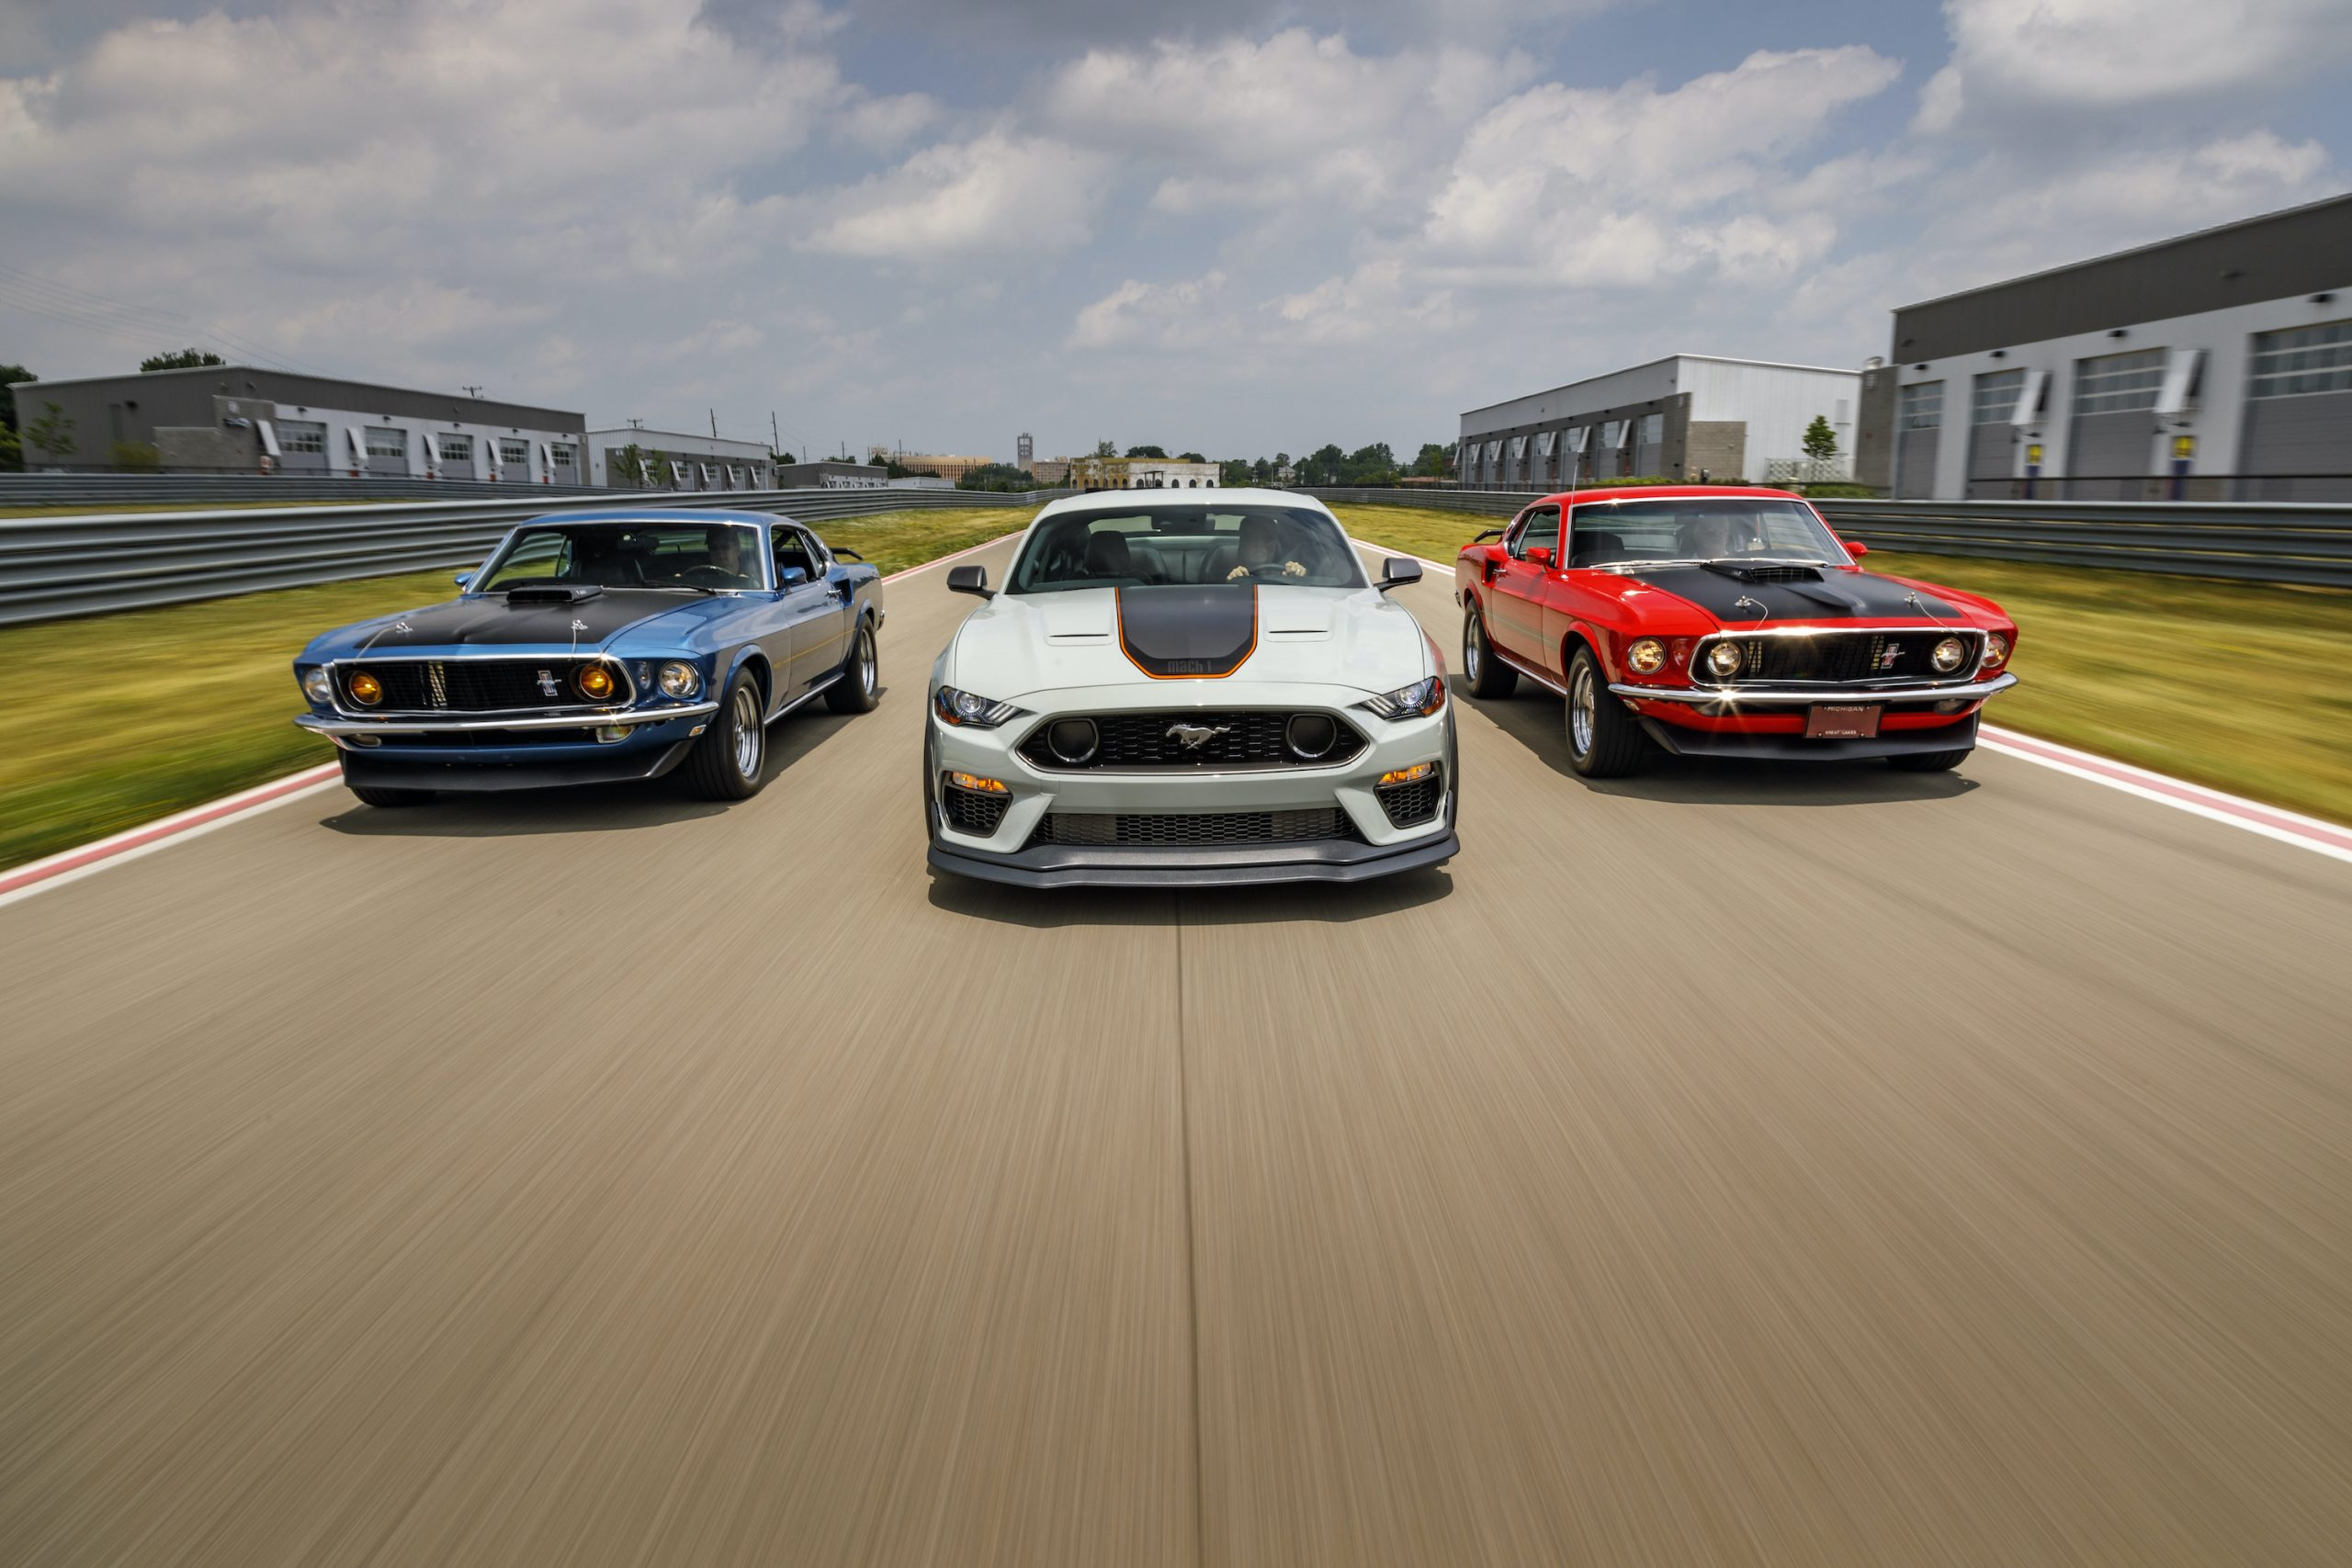 2021 Ford Mustang Mach 1 Generation Cars front